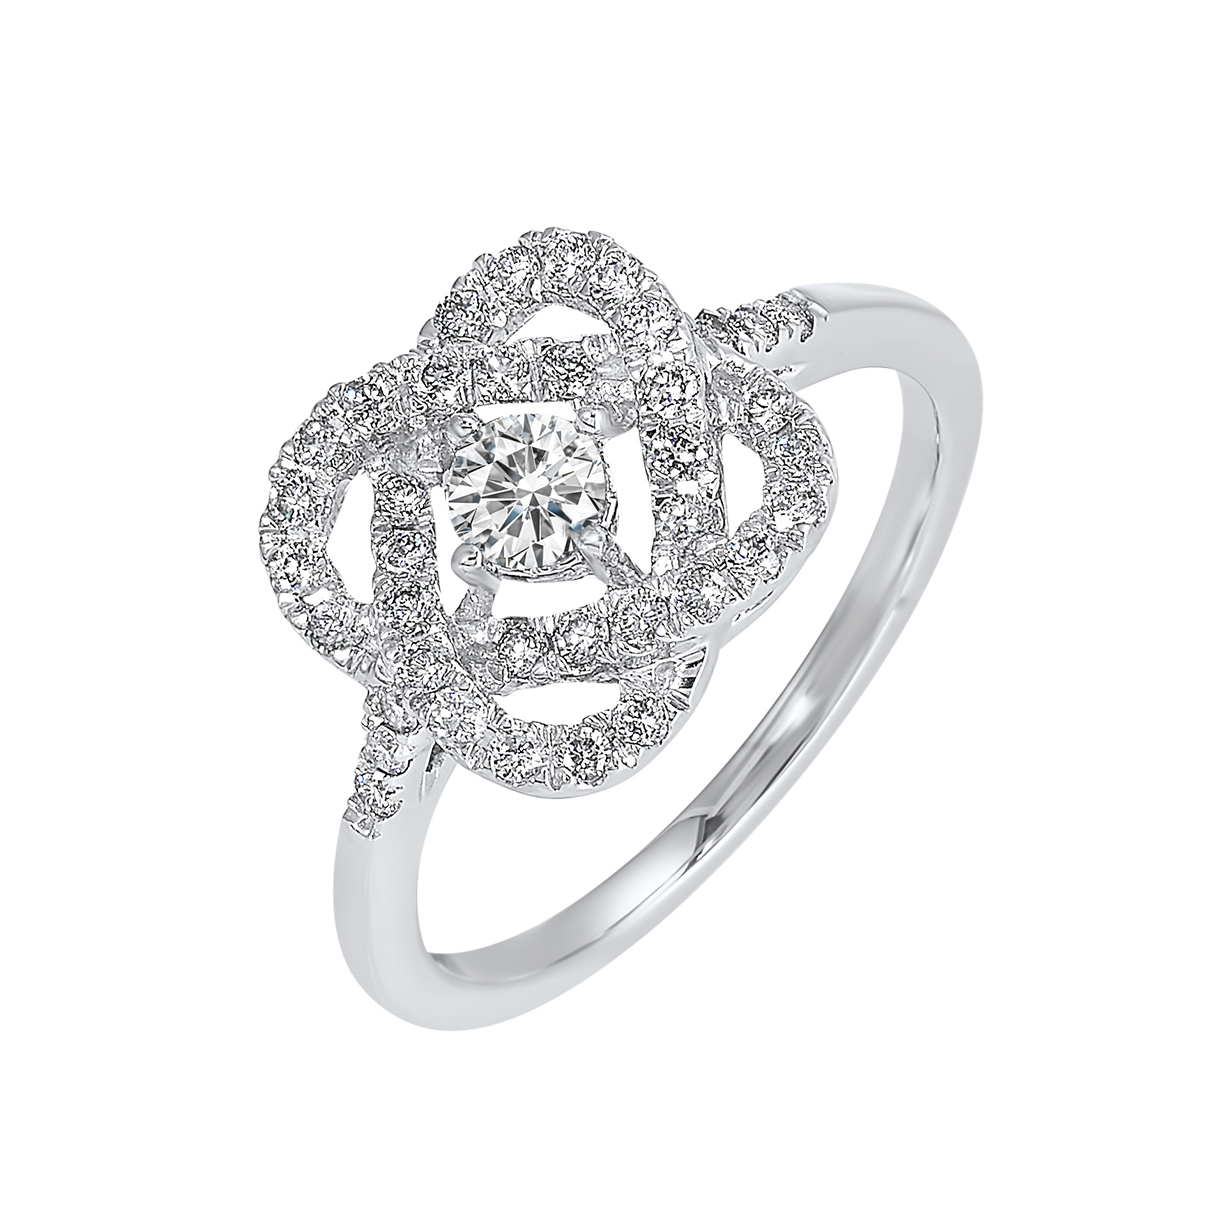 Love's Crossing Diamond Ring in 14K White Gold (1/2 ct. tw.) Moseley Diamond Showcase Inc Columbia, SC